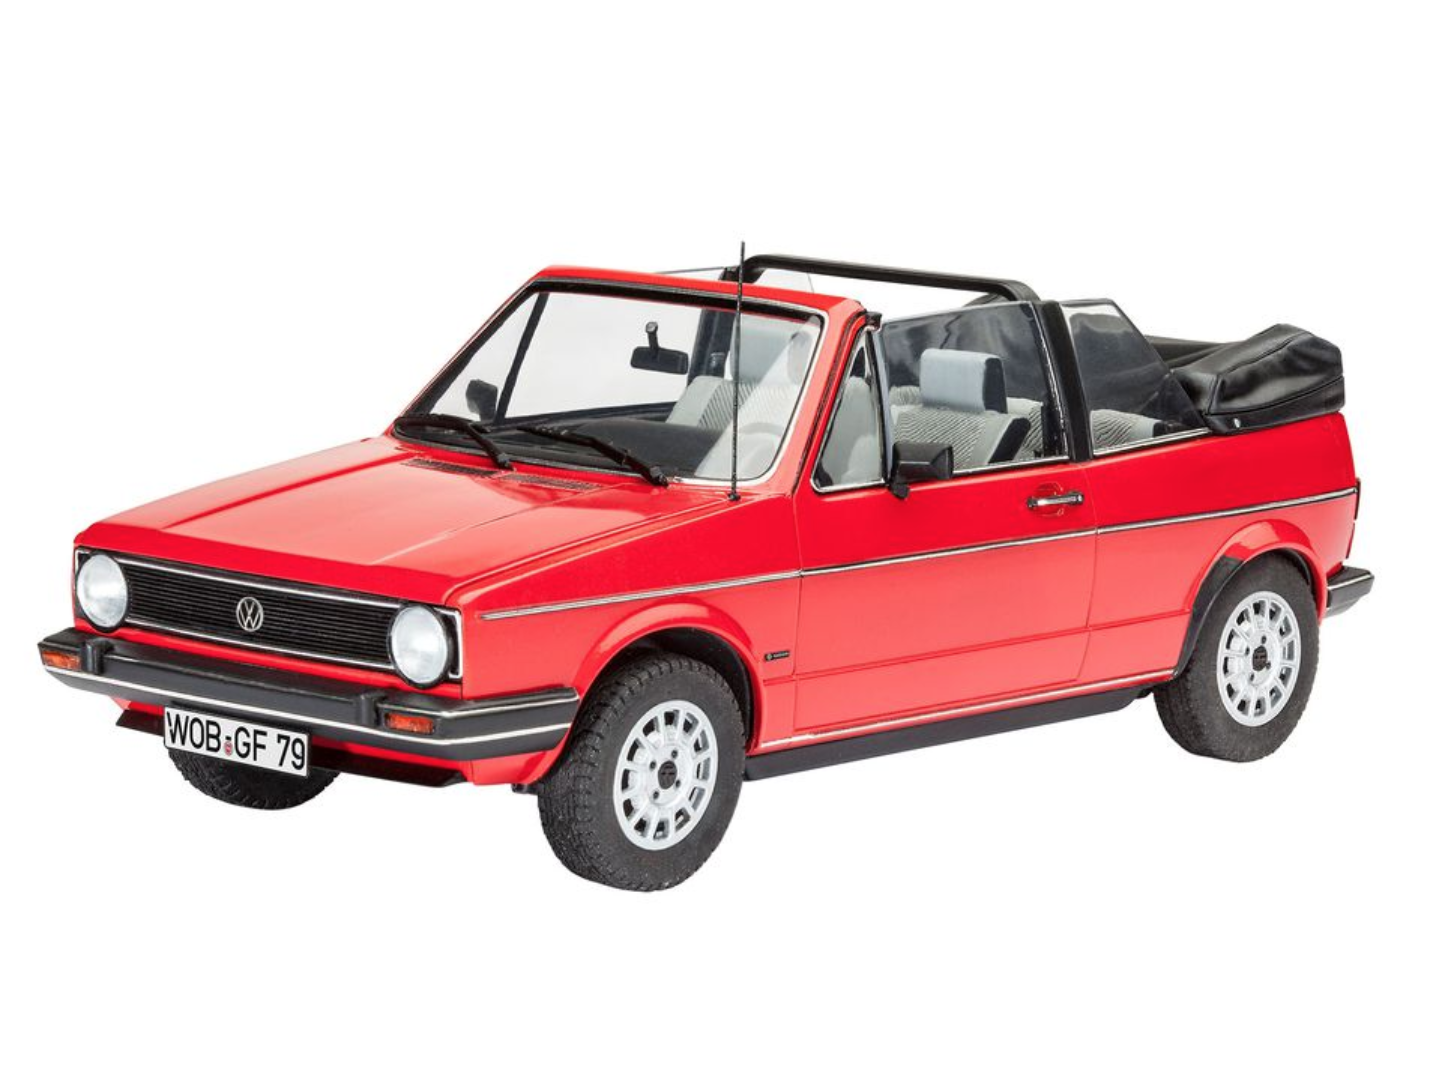 Vw Golf 1 Cabriolet Model Kit By Revell 1 24 Scale